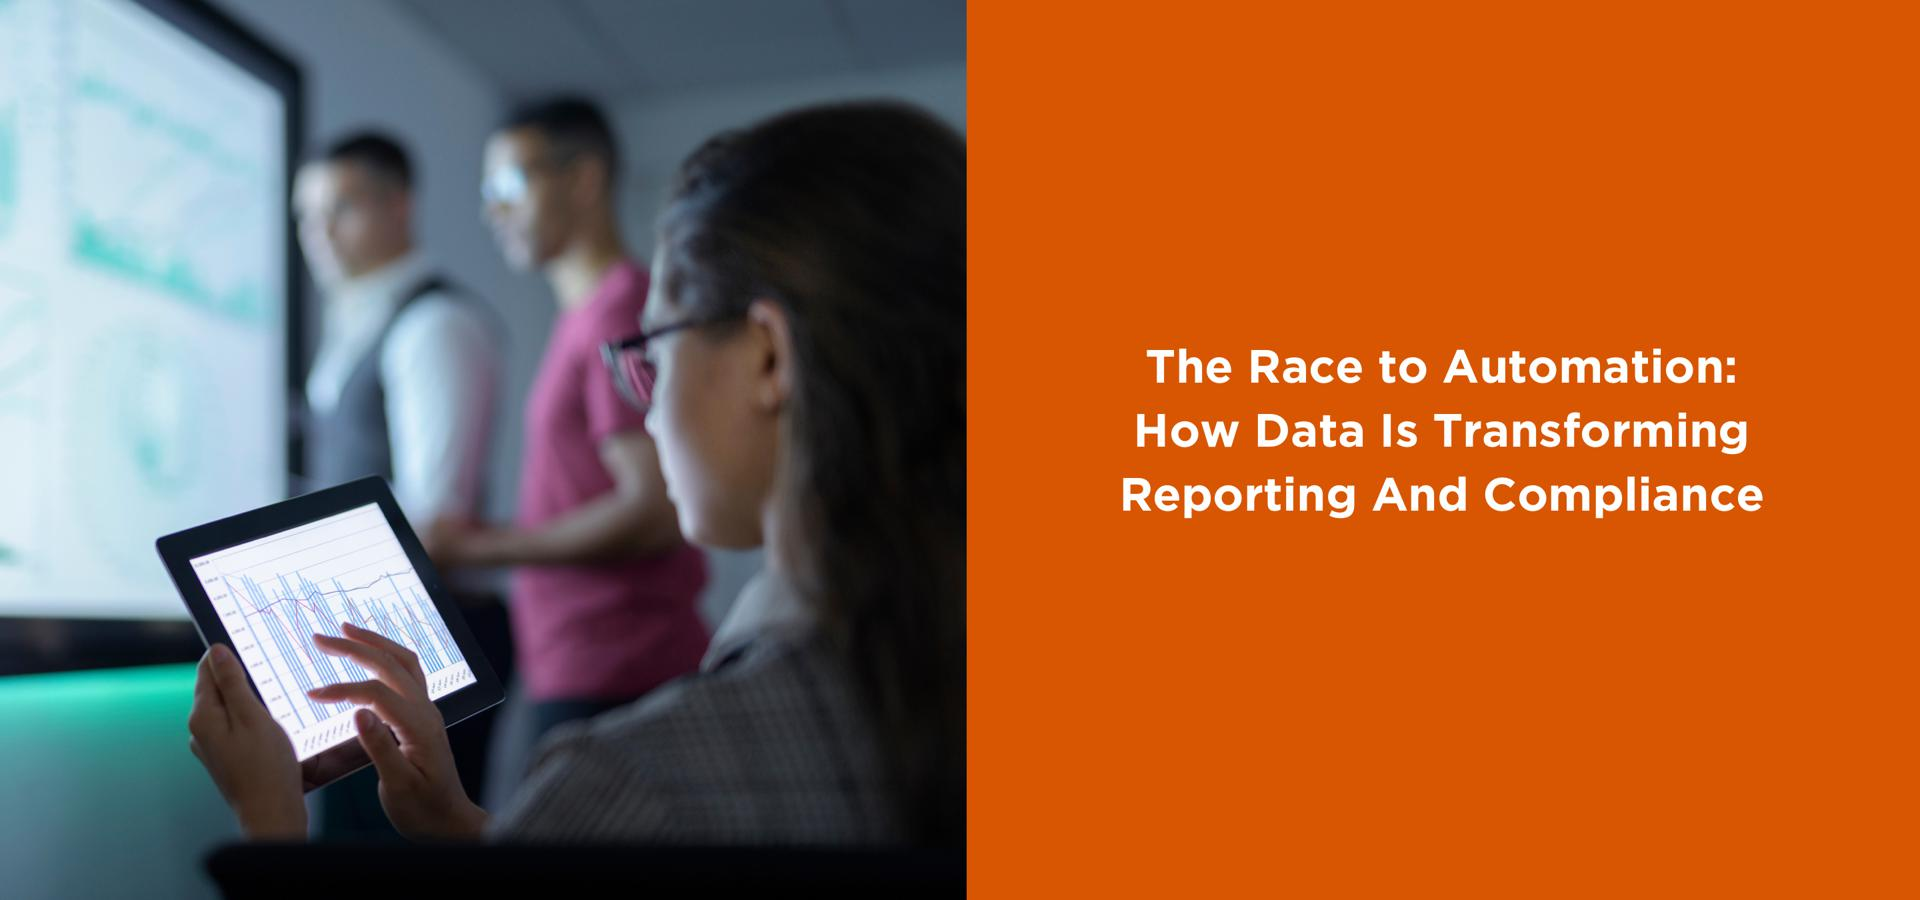 The Race to Automation:  How Data Is Transforming Reporting And Compliance